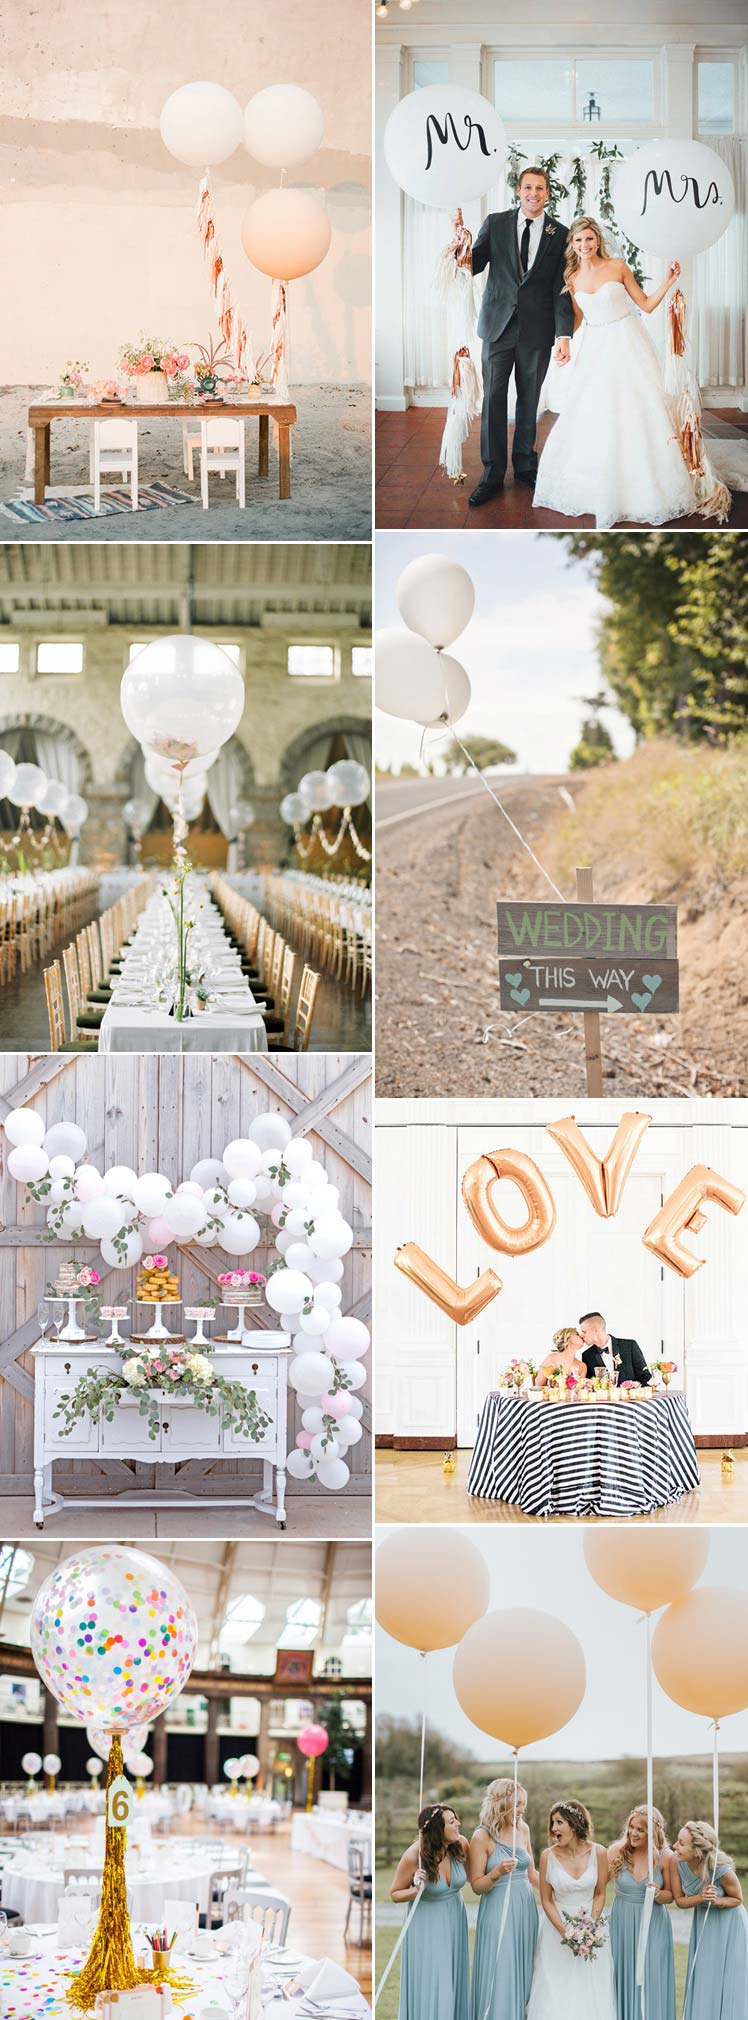 include balloons in your wedding theme